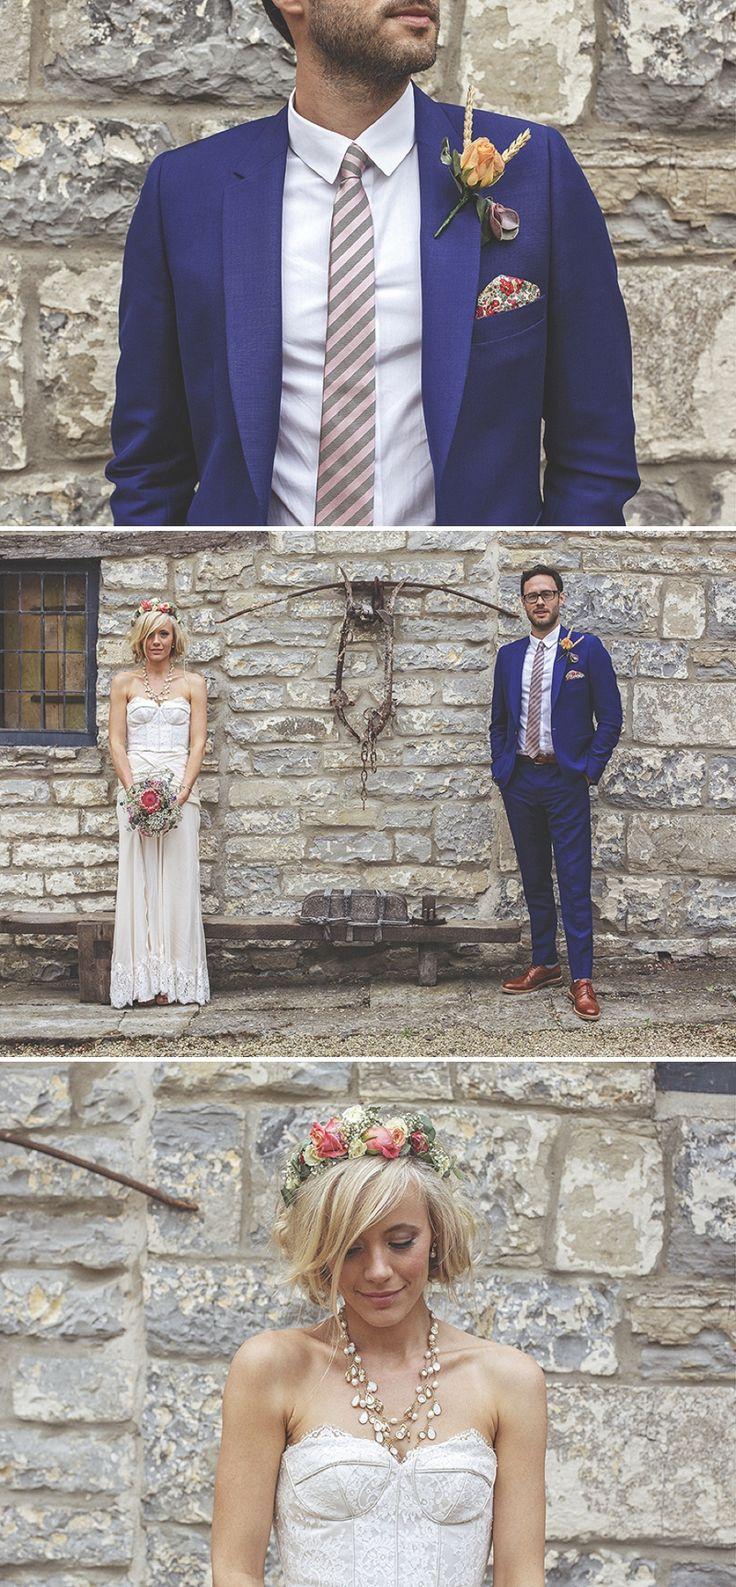 A bespoke designed by the bride wedding dress for a festival Glastonbury themed wedding in Somerset with a floral crown and vintage styling ...